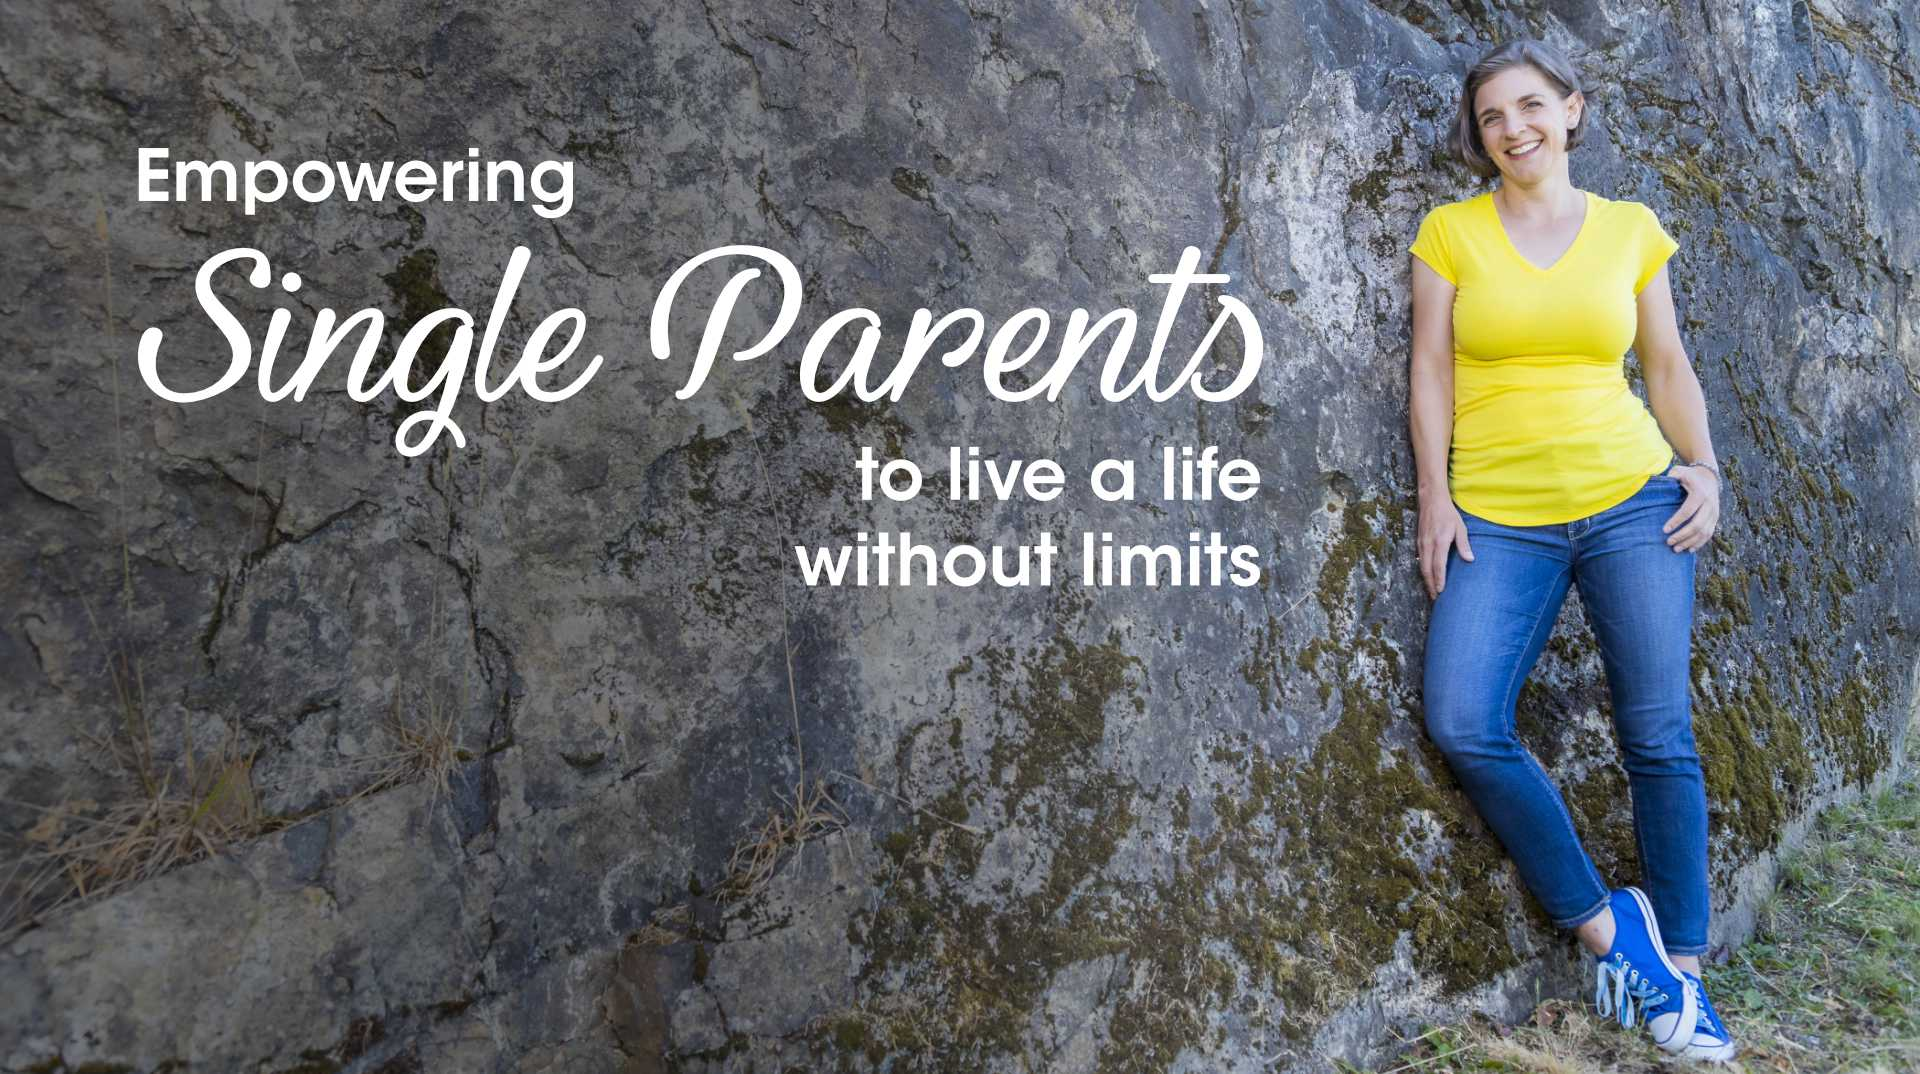 empowering single parents to live a life without limits